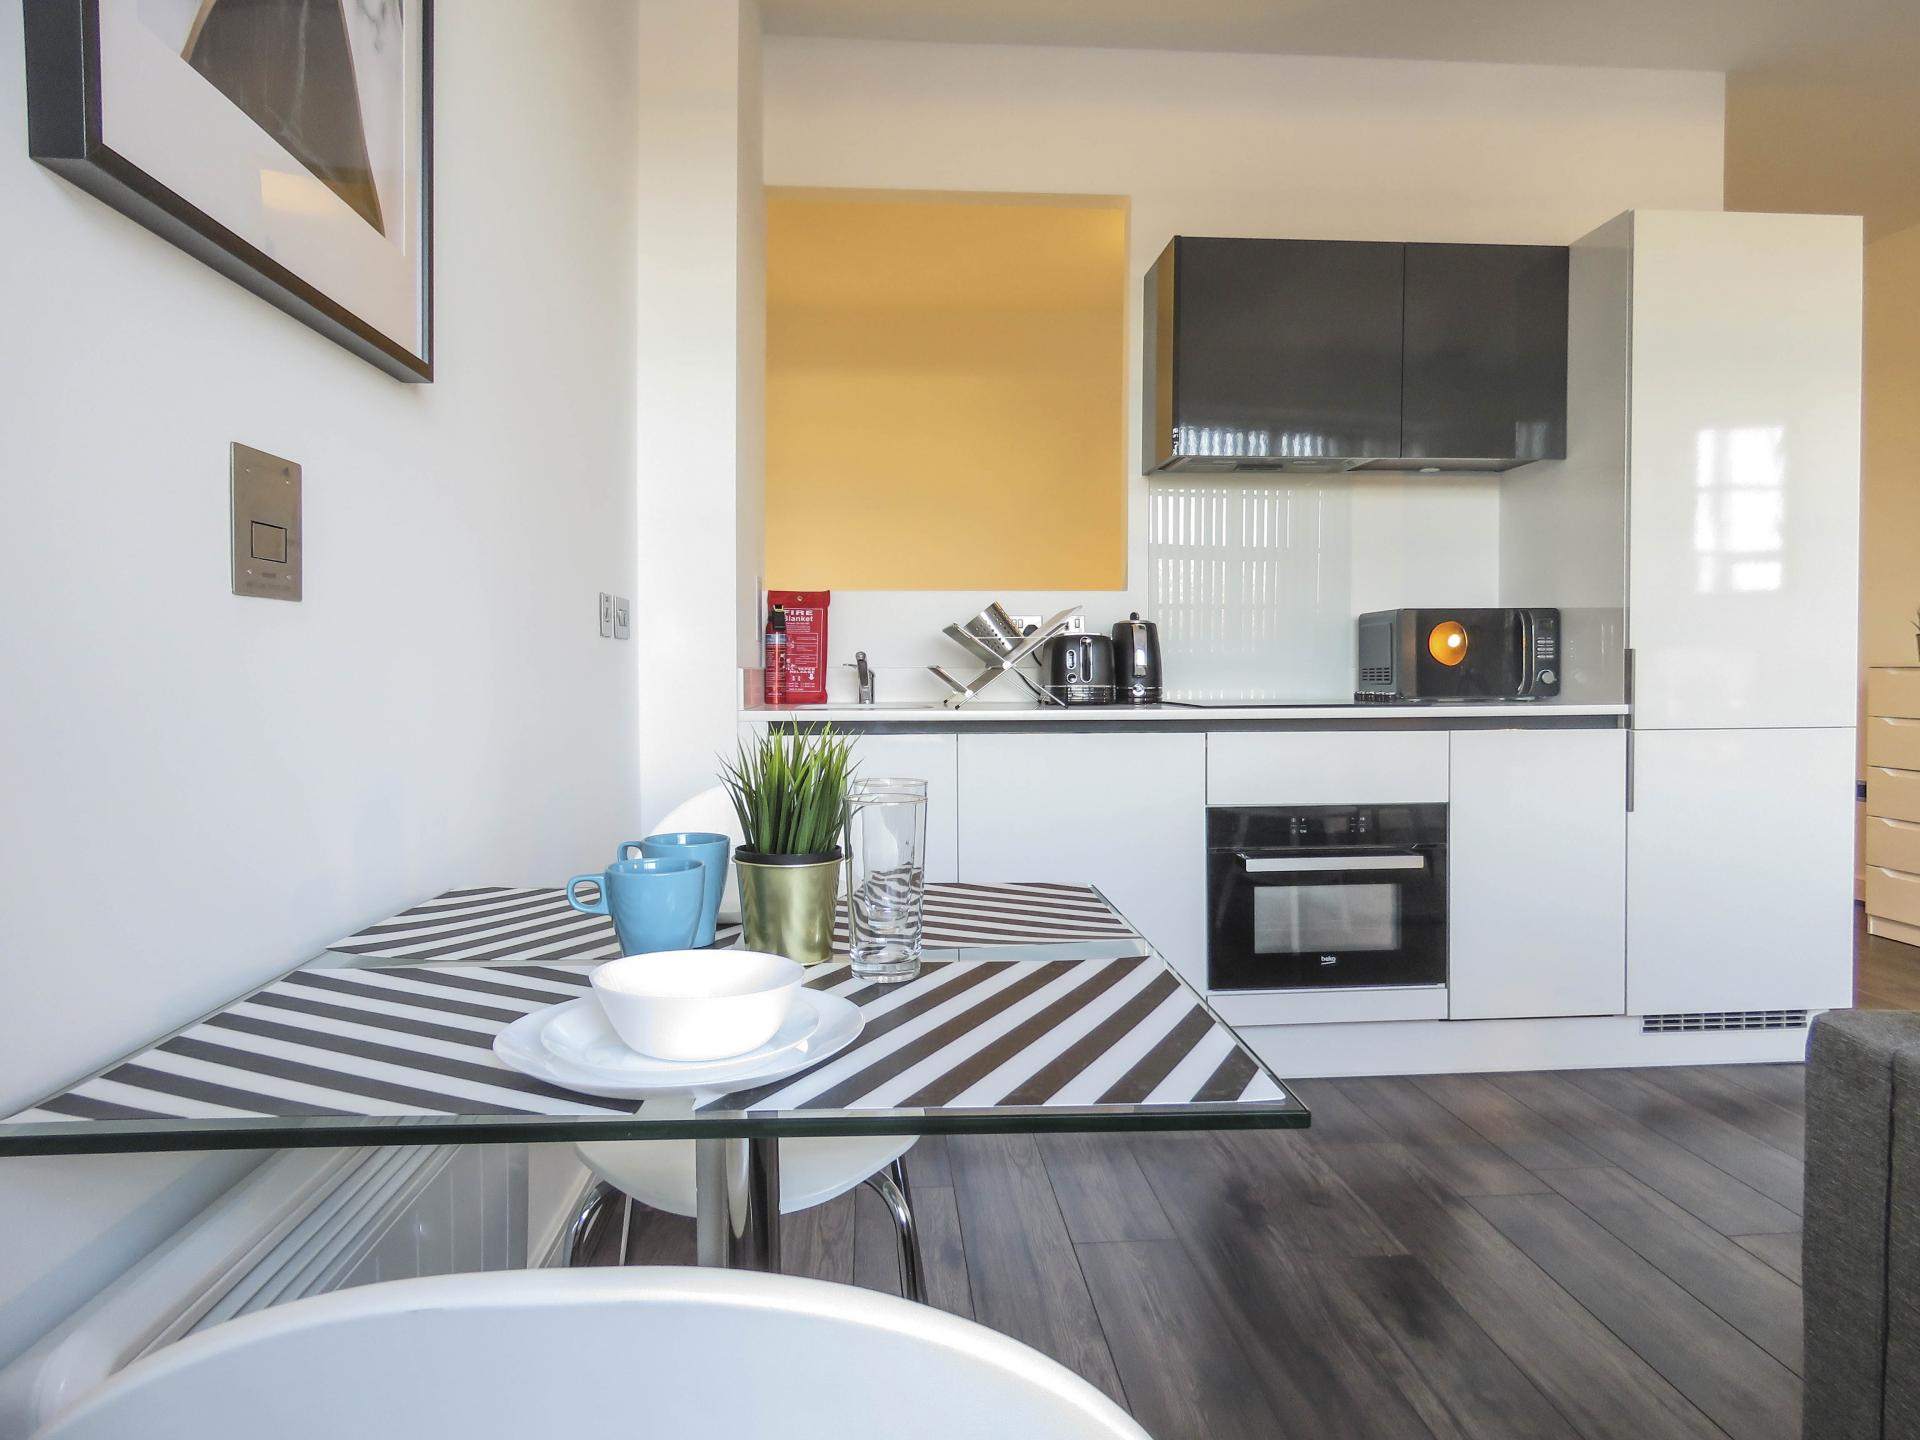 Kitchen at Kettleworks Serviced Apartments